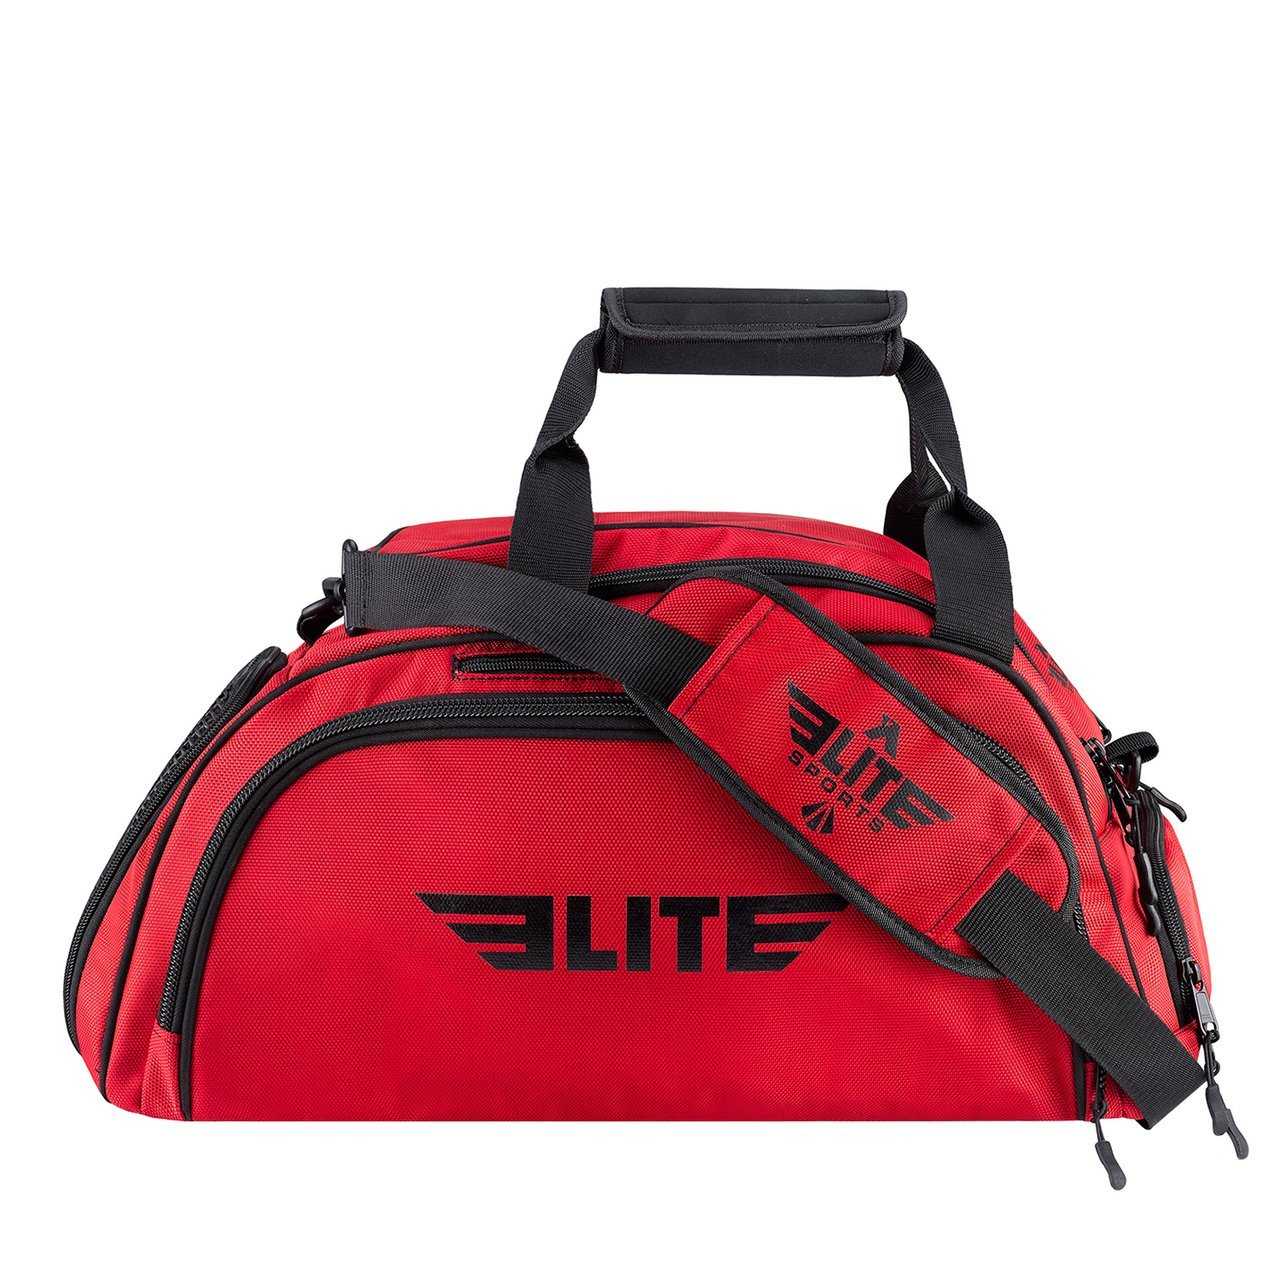 Elite Sports Warrior Series Red Medium Duffel Taekwondo Gear Gym Bag & Backpack